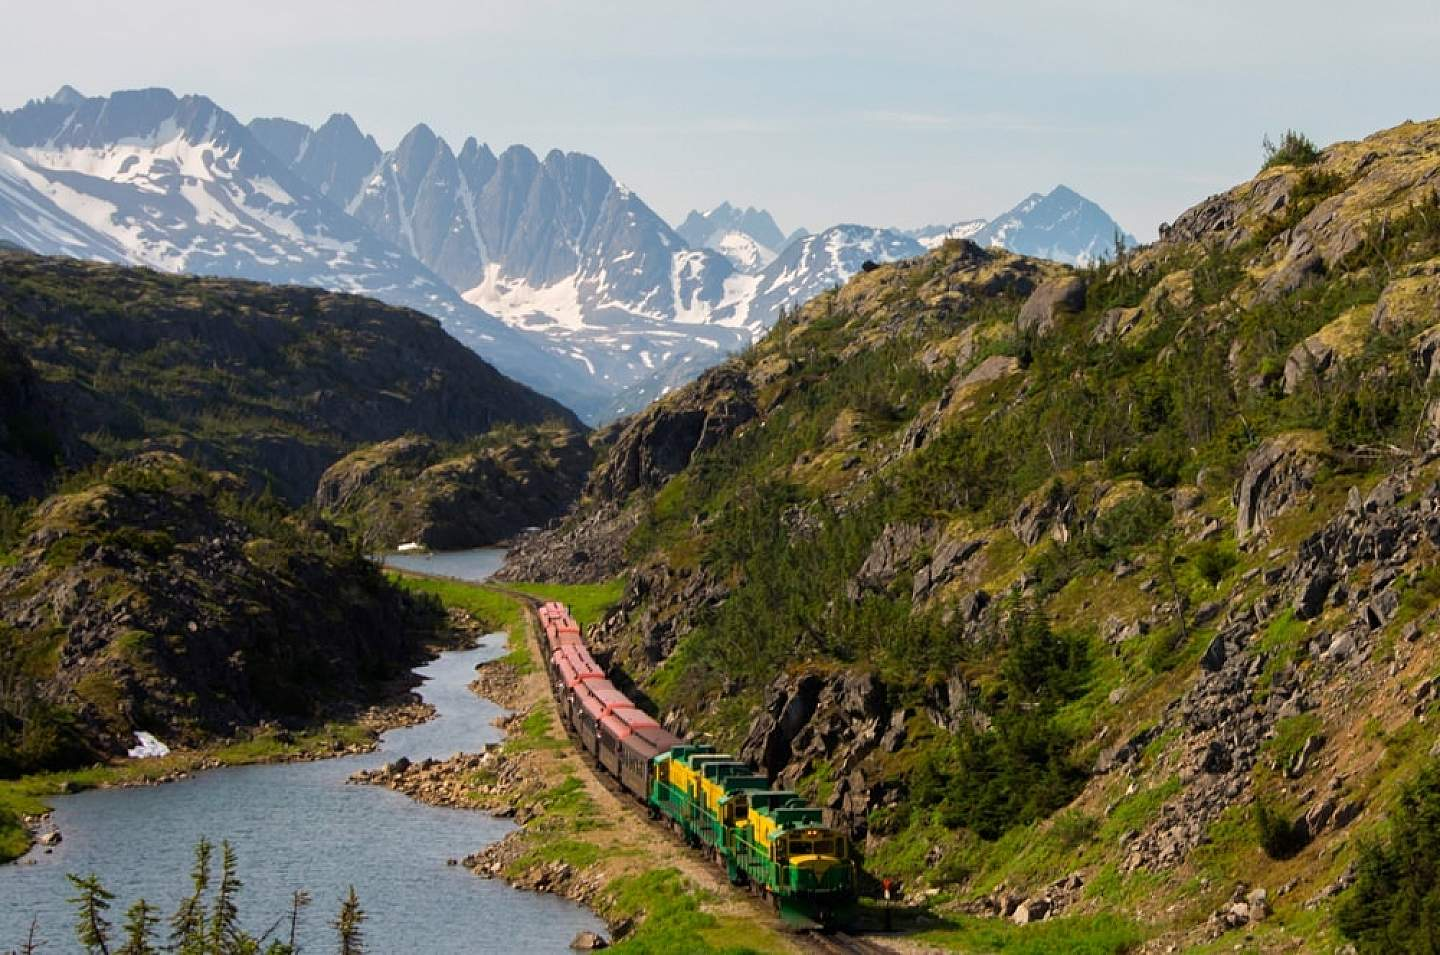 Enjoy the views upon the White Pass Train and Yukon Route Sightseeing